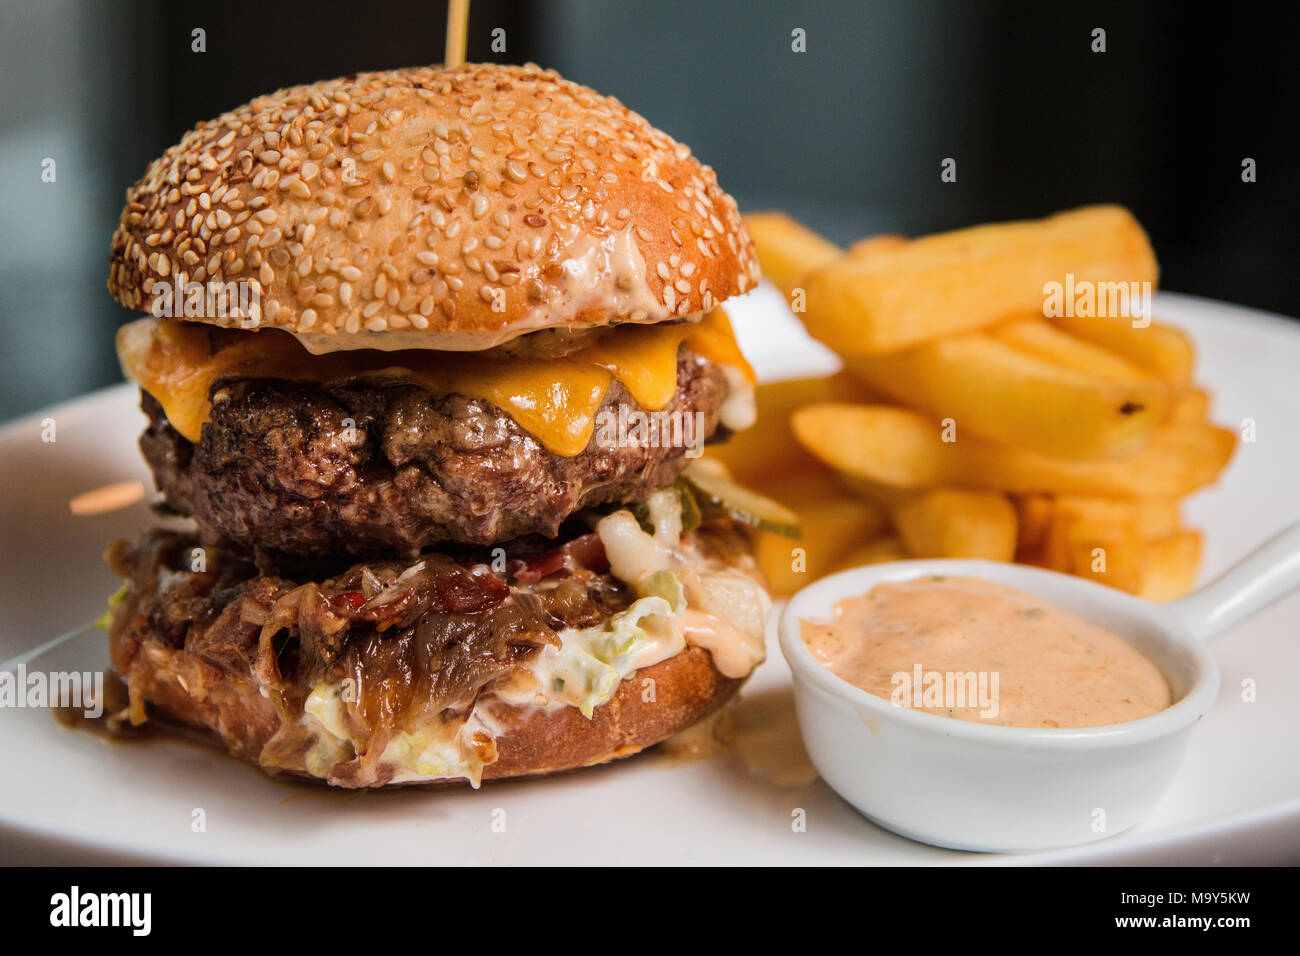 Close up of a tasty burger with sauce and fries - Stock Image